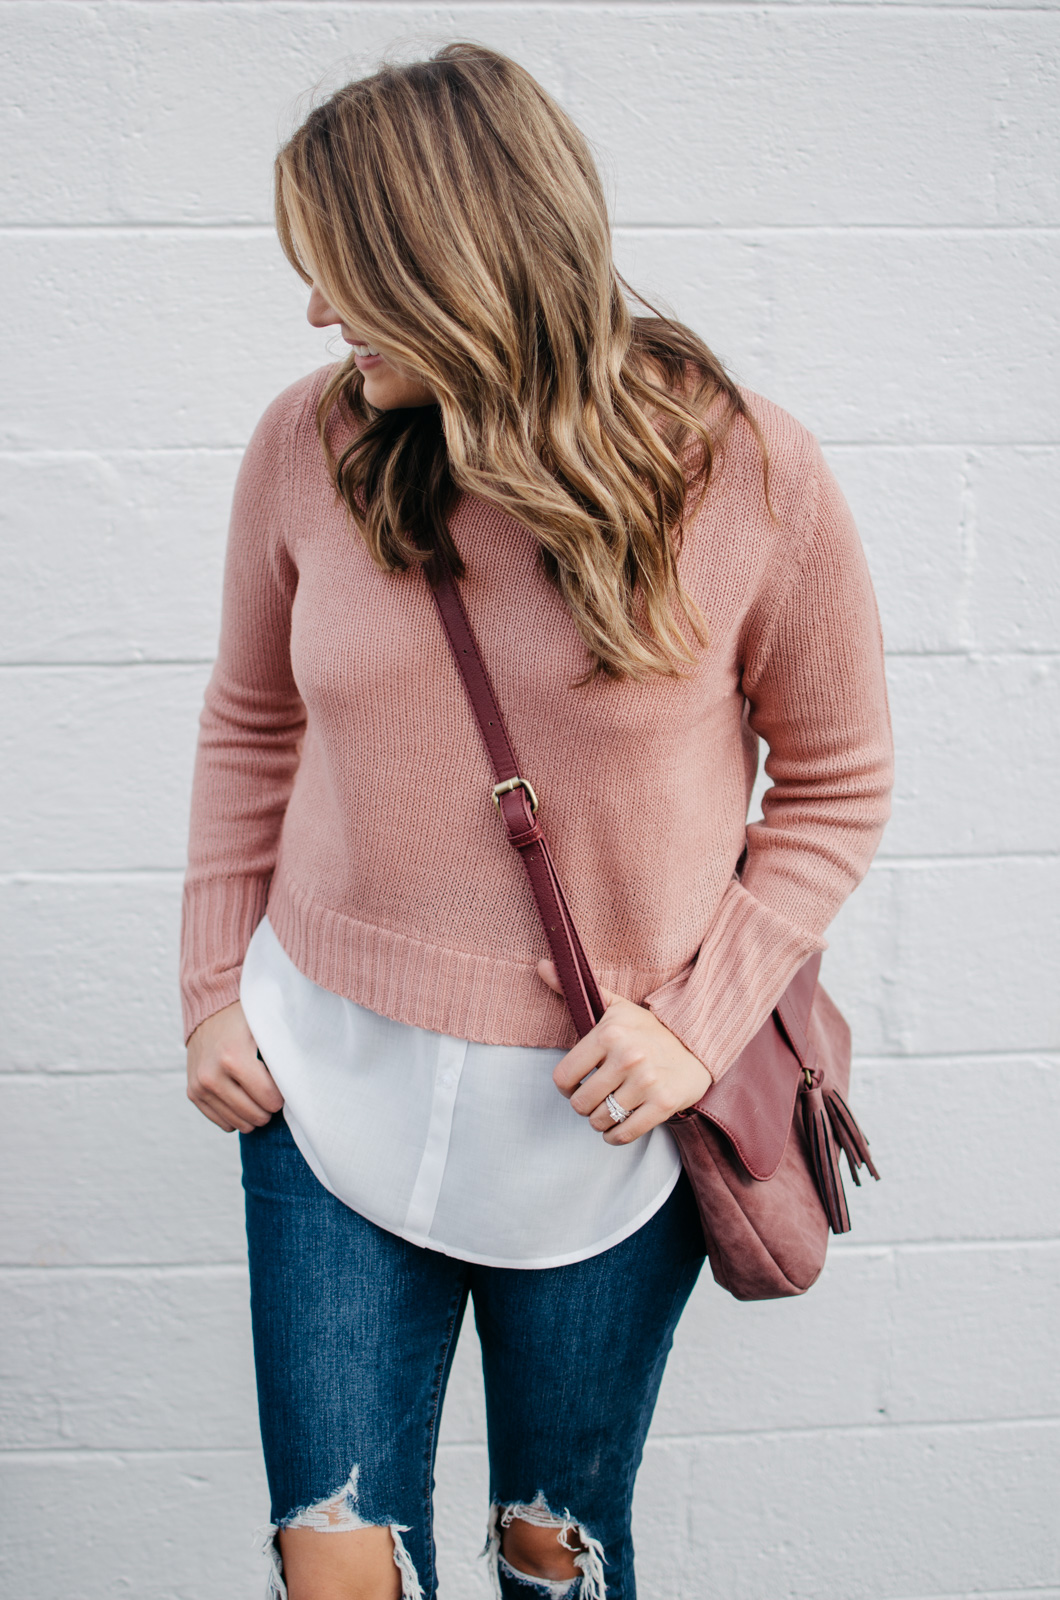 layered sweater outfit for fall | For more preppy Fall outfit ideas, click through to bylaurenm.com!